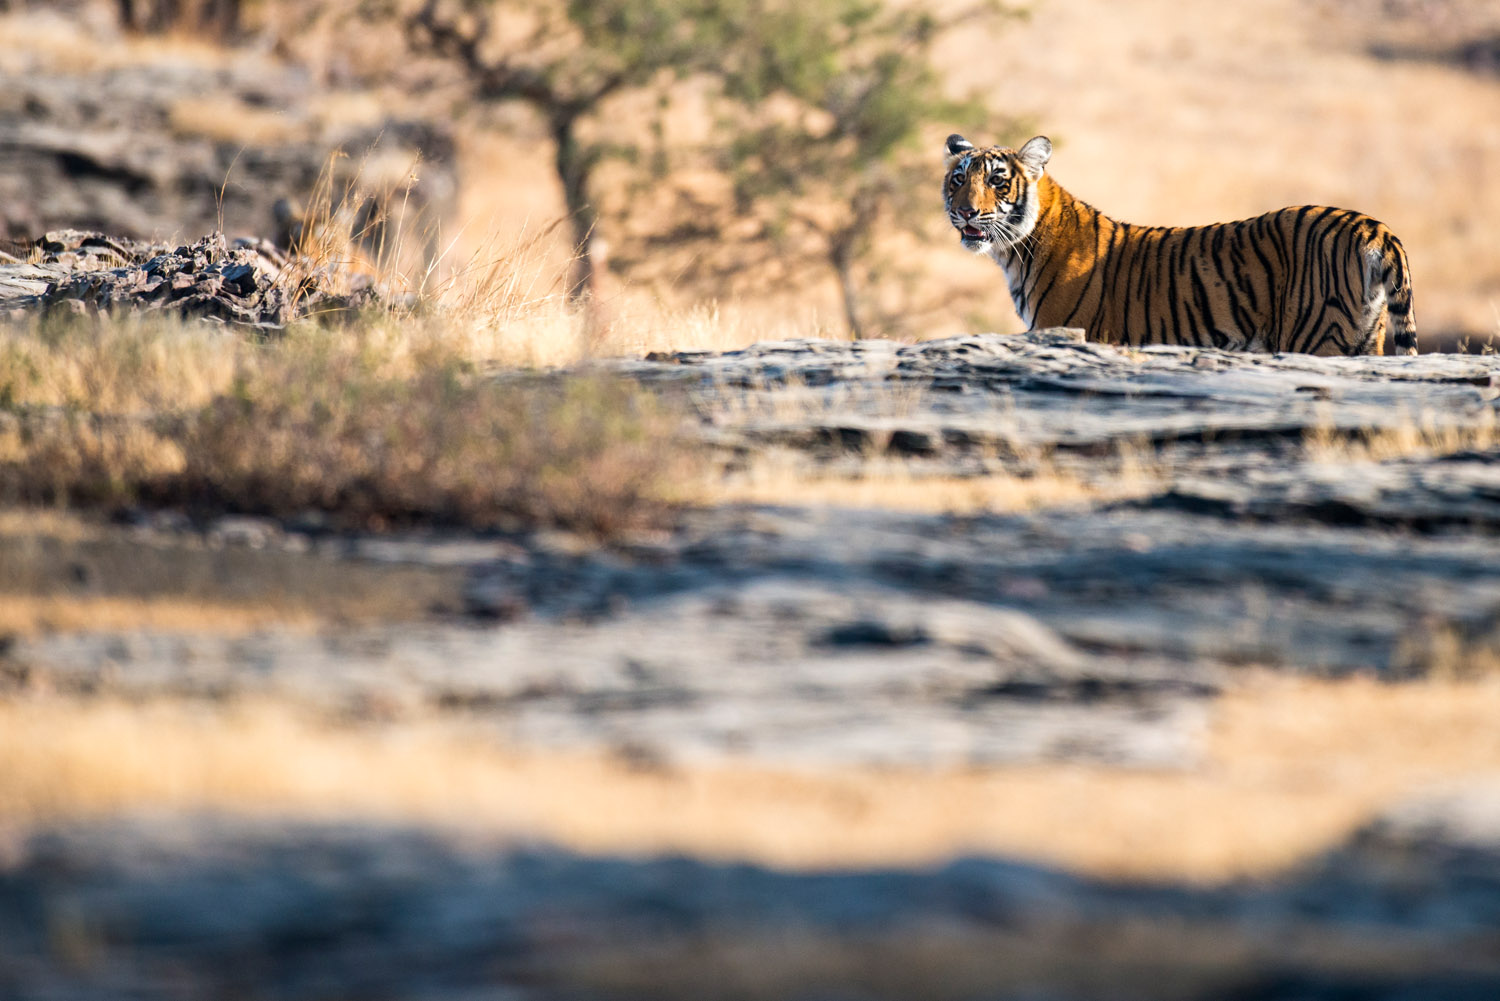 Bengal tiger looking across rocky plateau, Ranthambhore National Park, Rajasthan, India